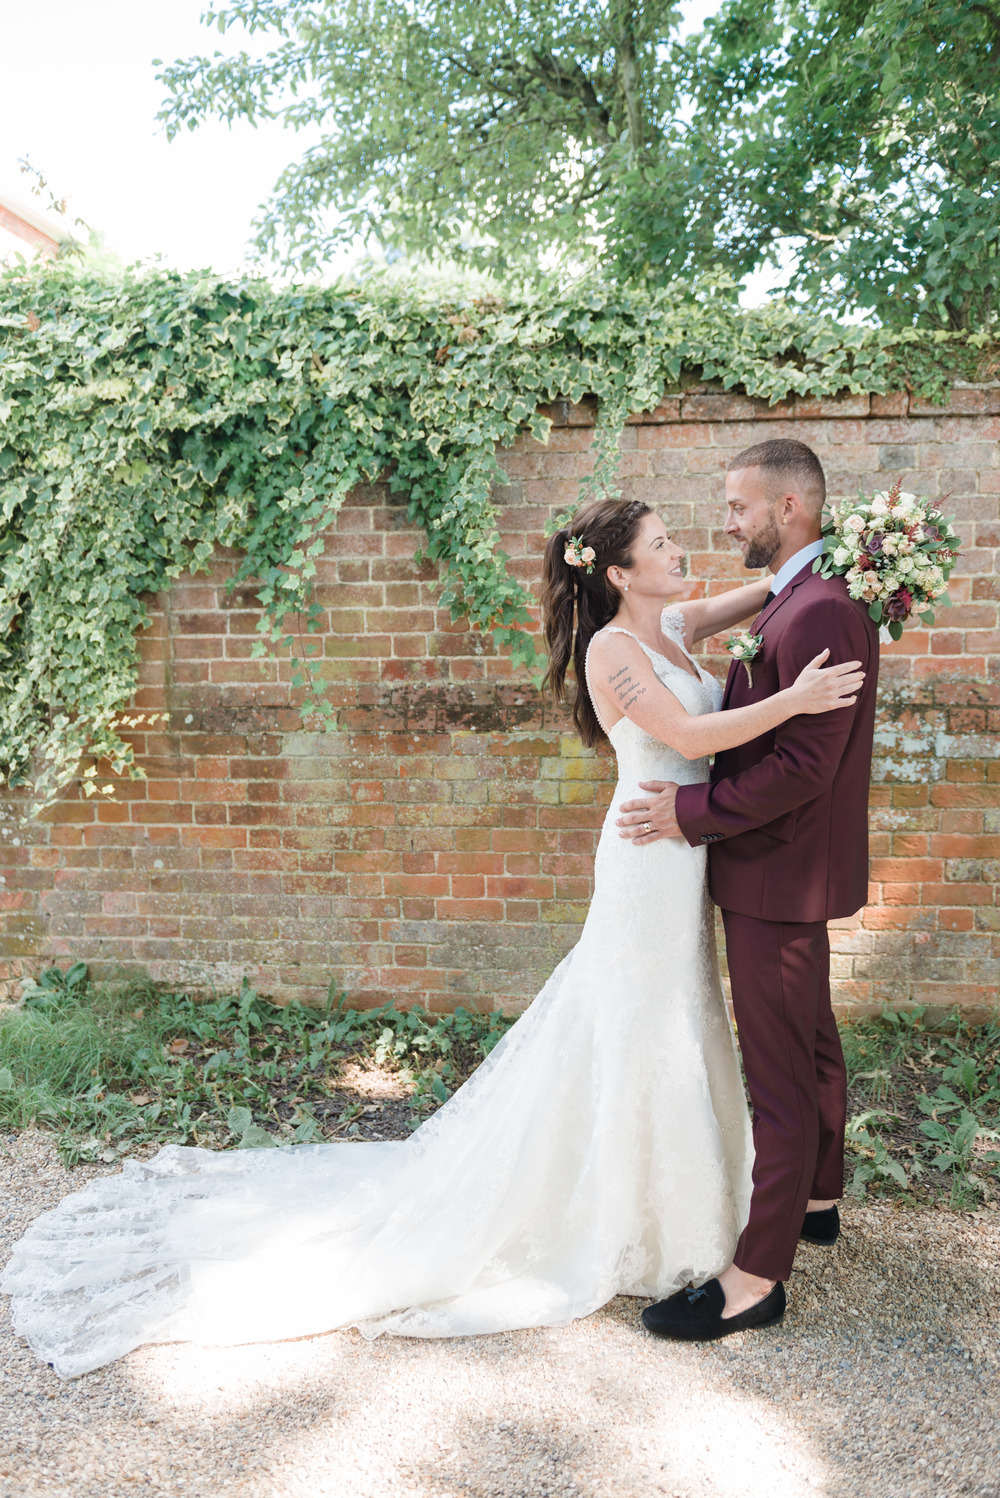 hannah-mcclune-photography-mill-house-hotel-swallowfield-rustic-wedding-burgundy-and-peach-wedding-50